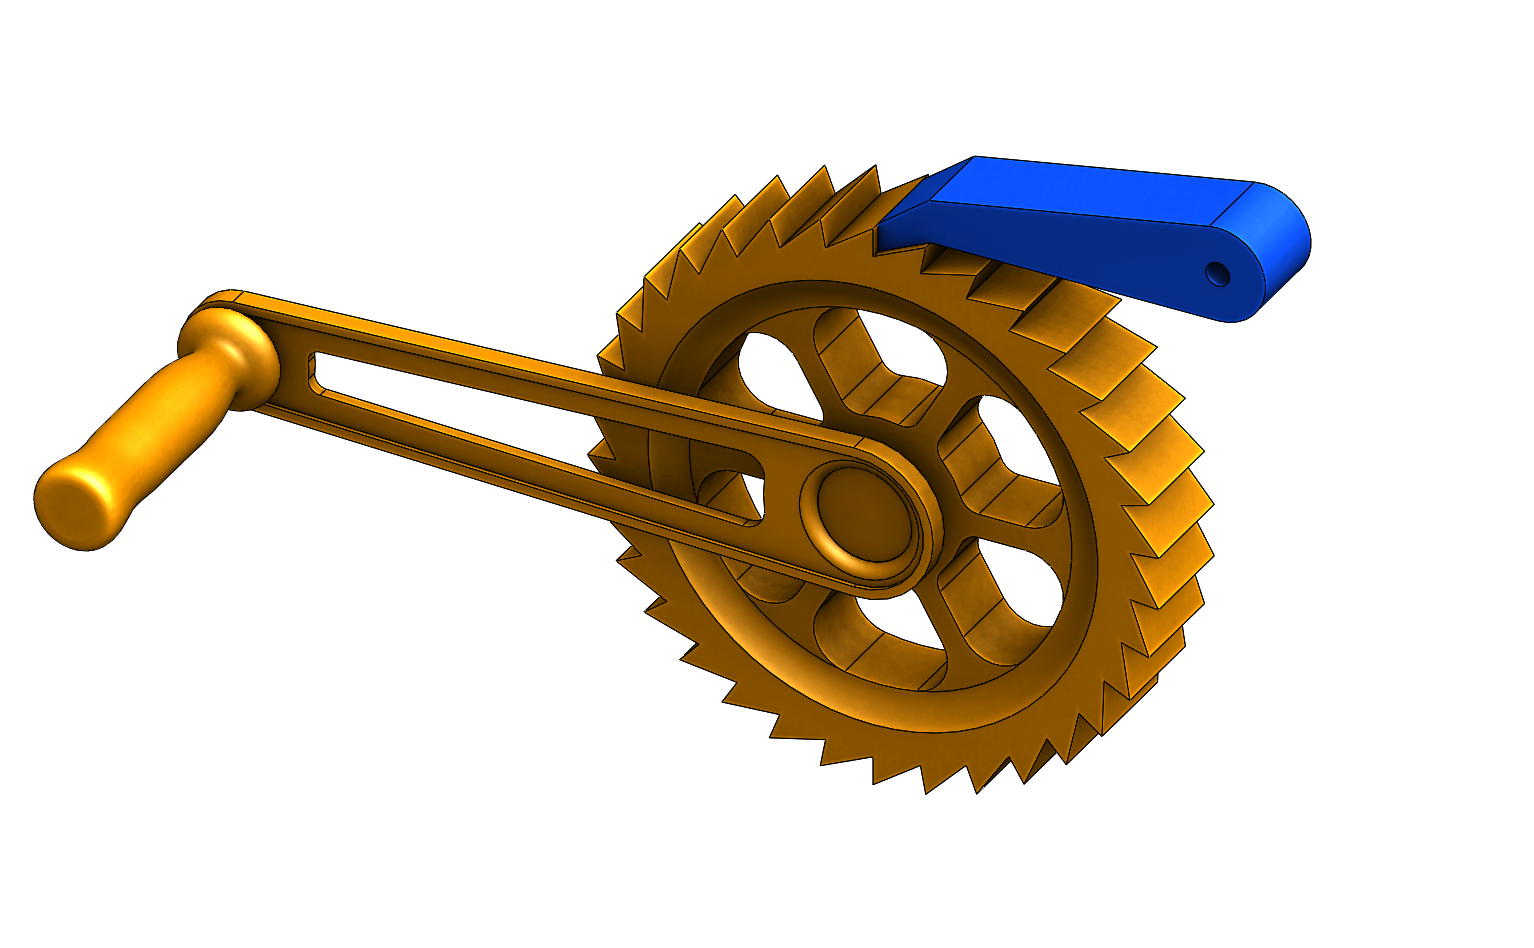 Creative Mechanisms - Generate one-way motion with a ratchet device and pawl